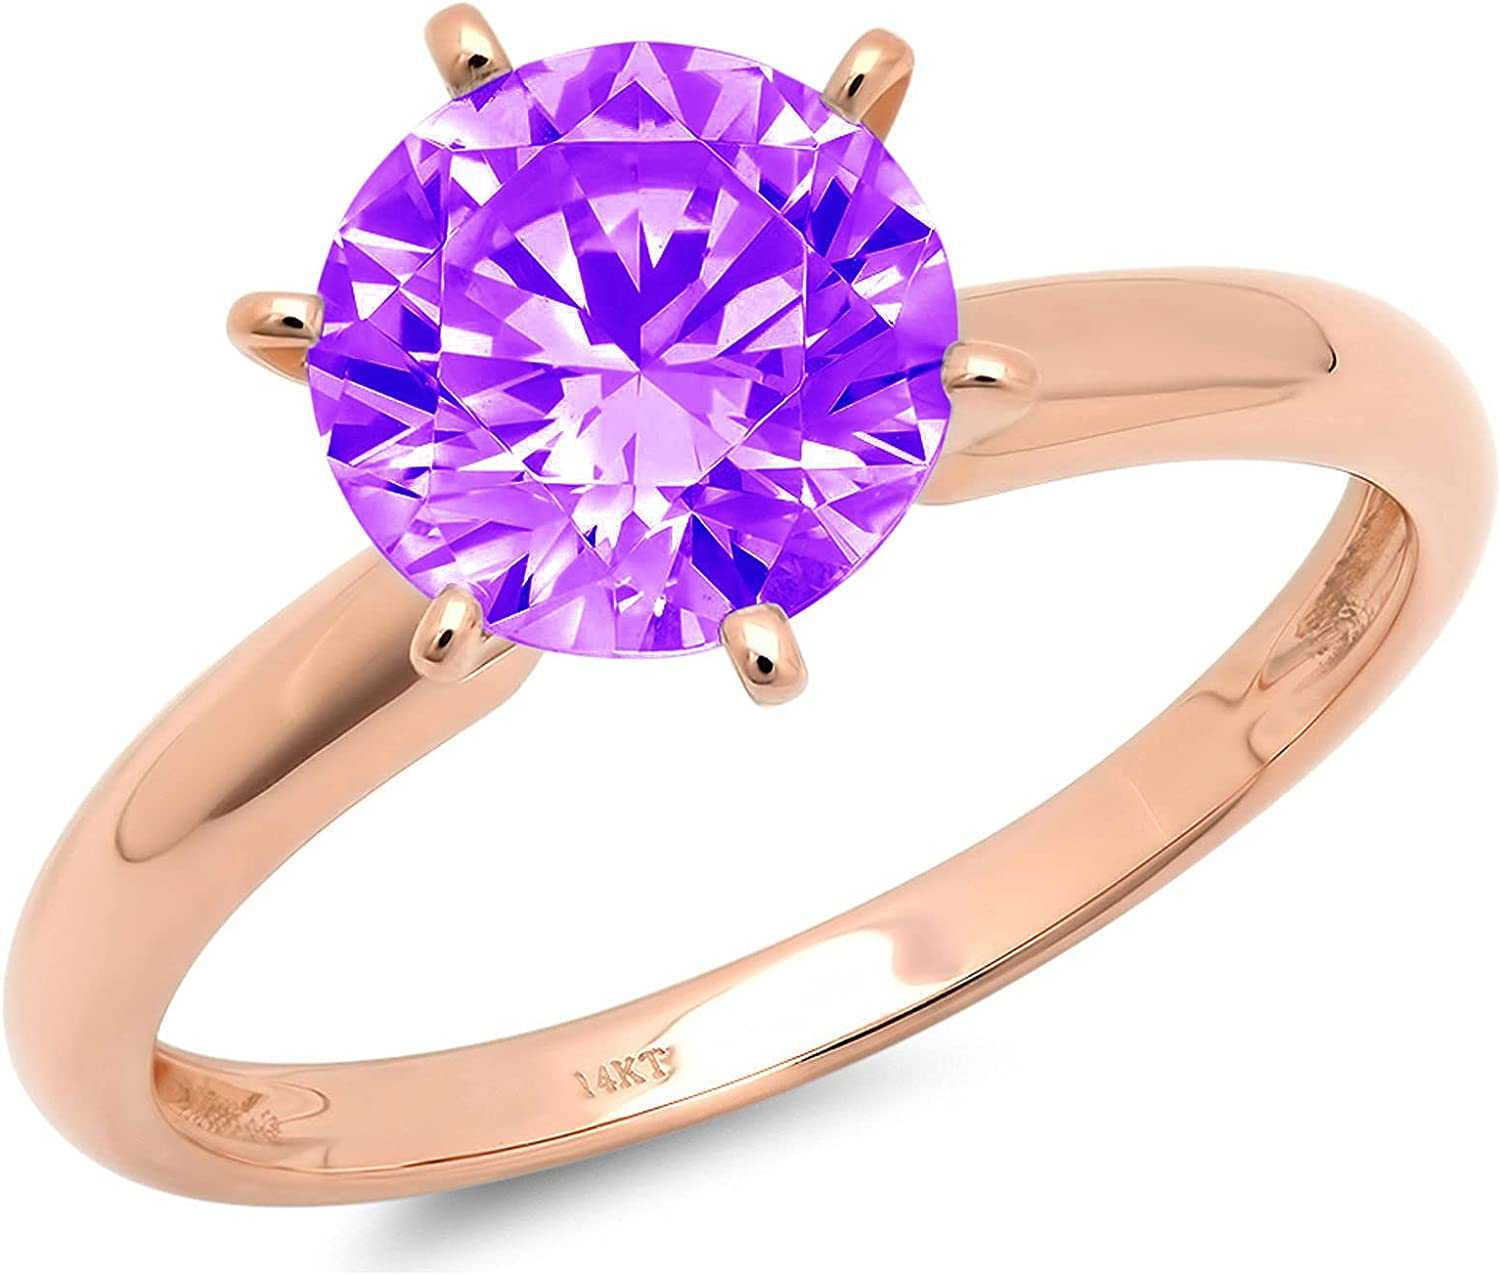 Max 42% OFF Washington Mall 2.4ct Round Cut Solitaire Natural Purple Amethyst VVS1 Excellent